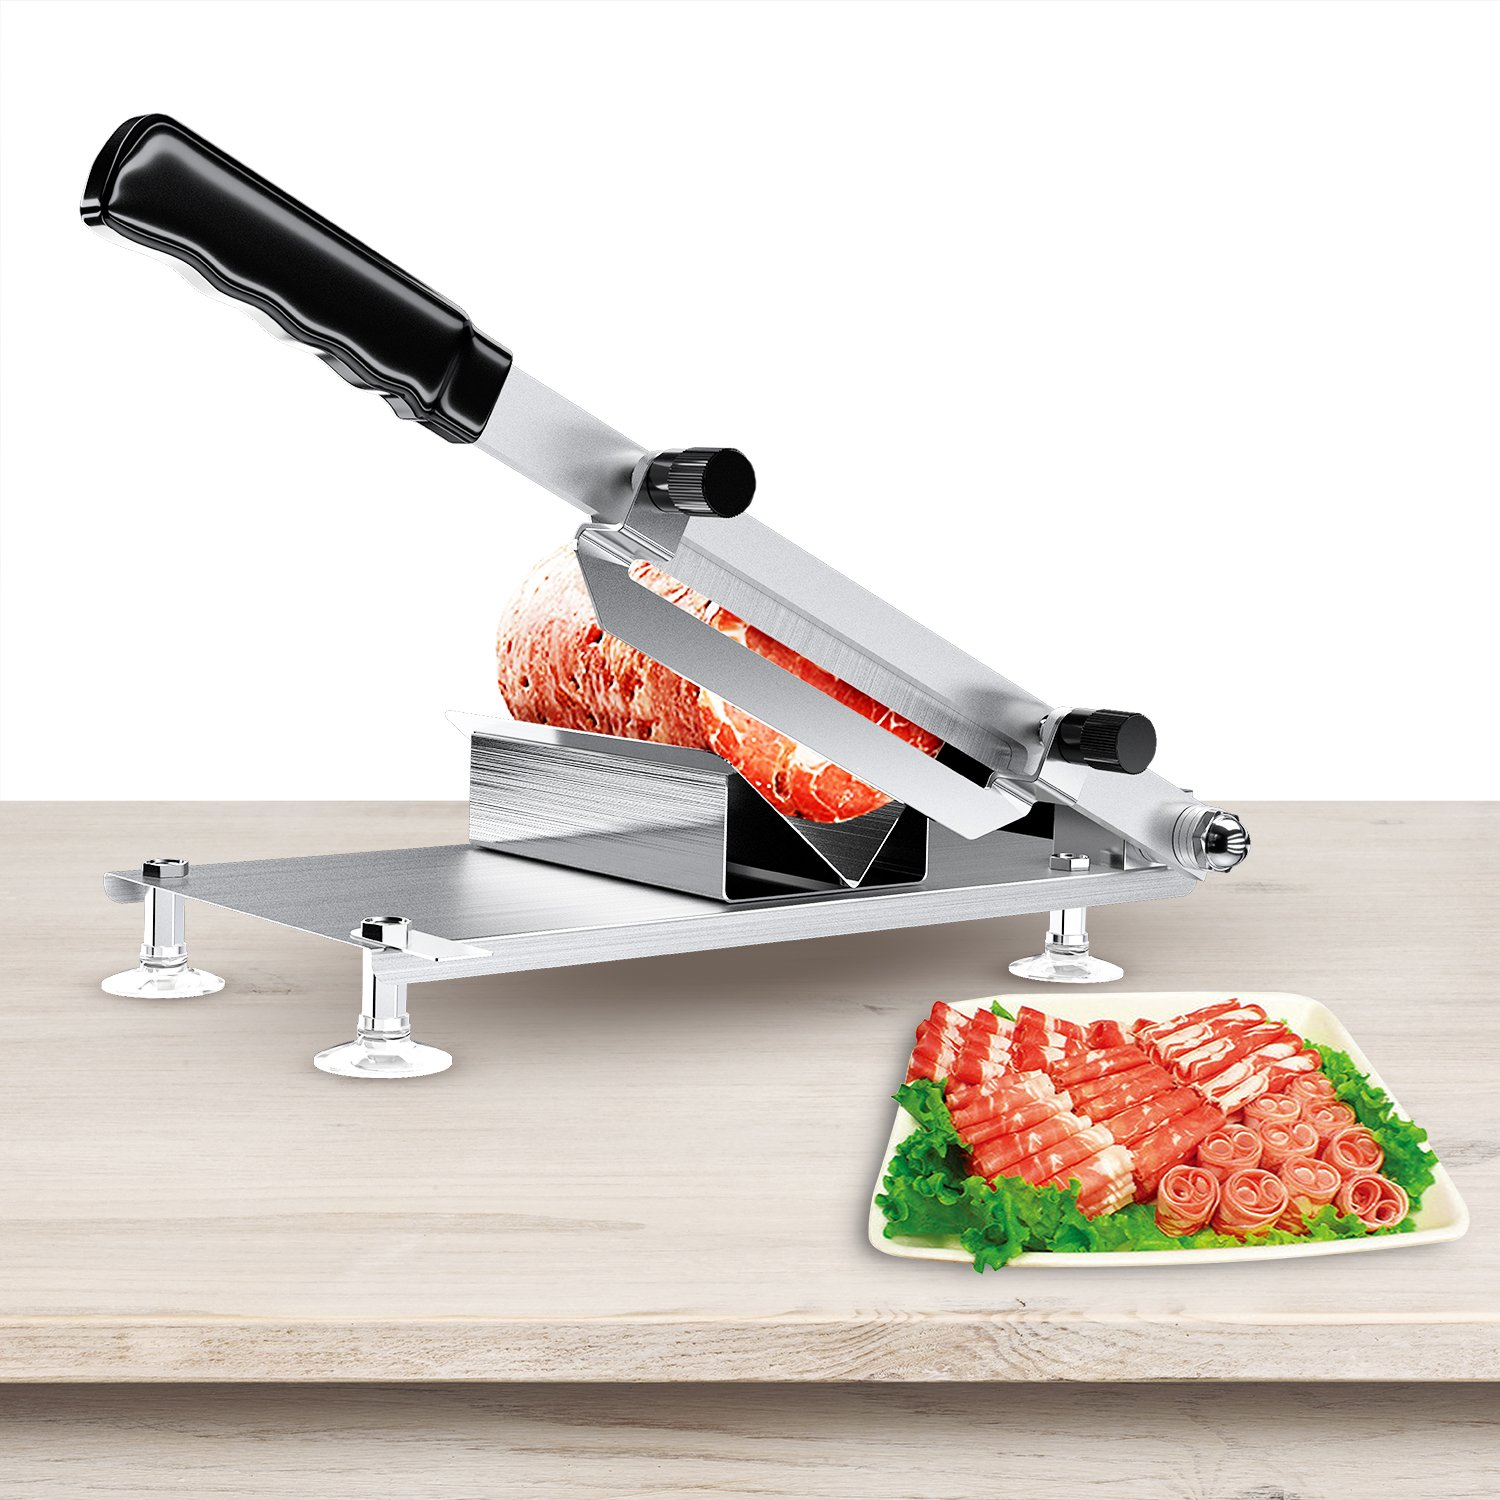 Meat Slicer-Manual Frozen Meat Slicer Cutter Beef Mutton Sheet Slicing Machine For Home Kitchen and Business Use-Food Slicer Stainless Steel Handle